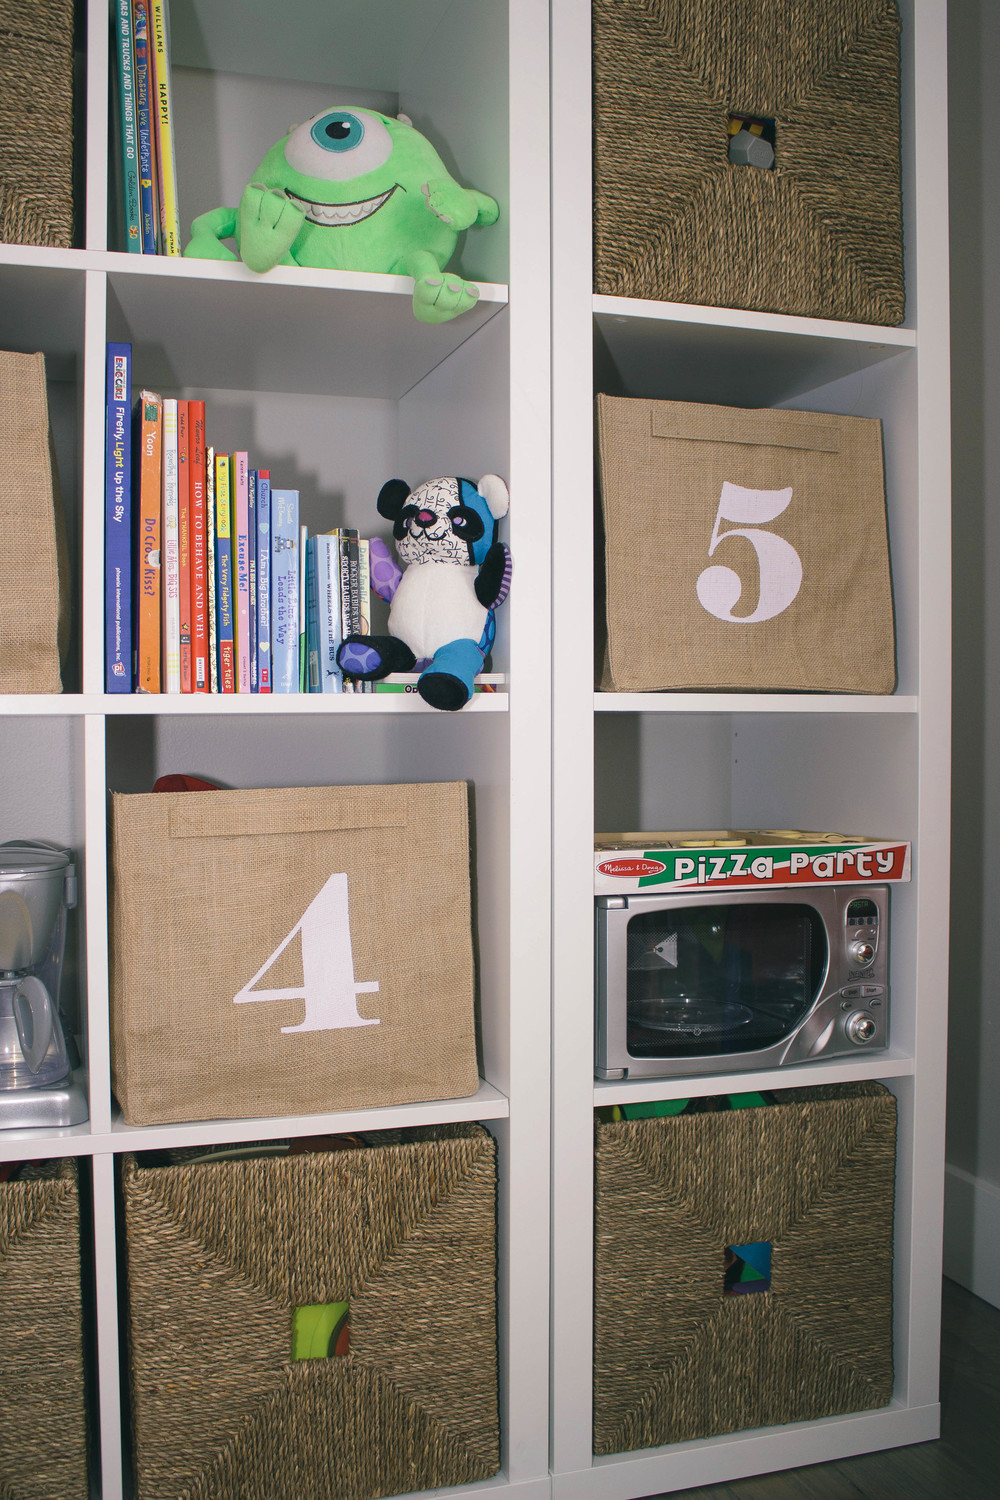 playroom storage, playroom, basket, home decor, toy story toys, paint easel, numbered bins, toy storage, monsters inc toys